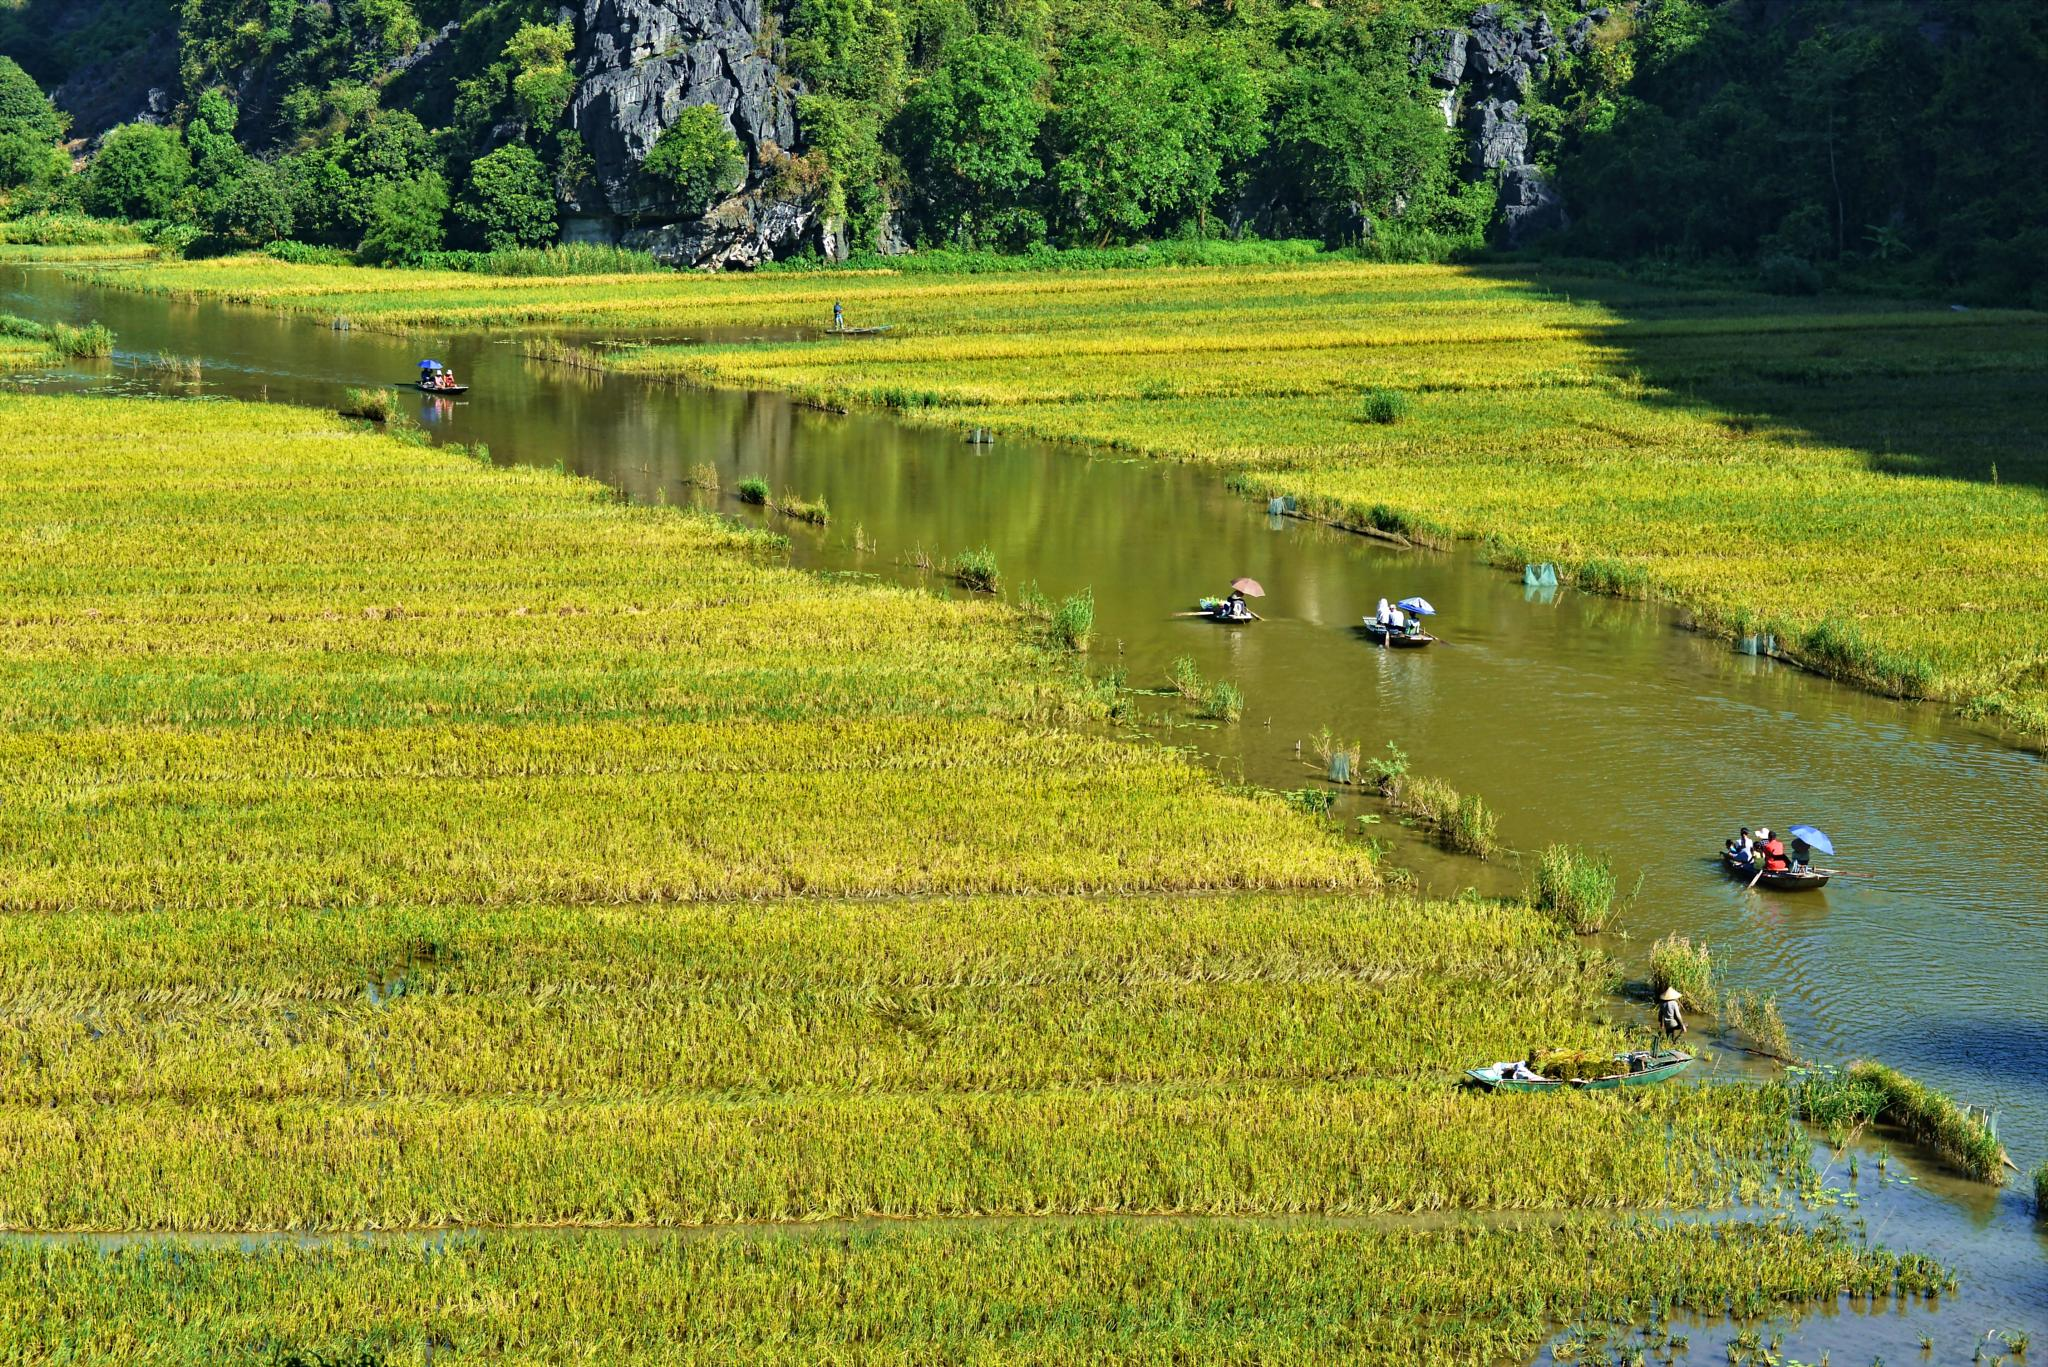 Tam Coc by Hung Quang Ngo